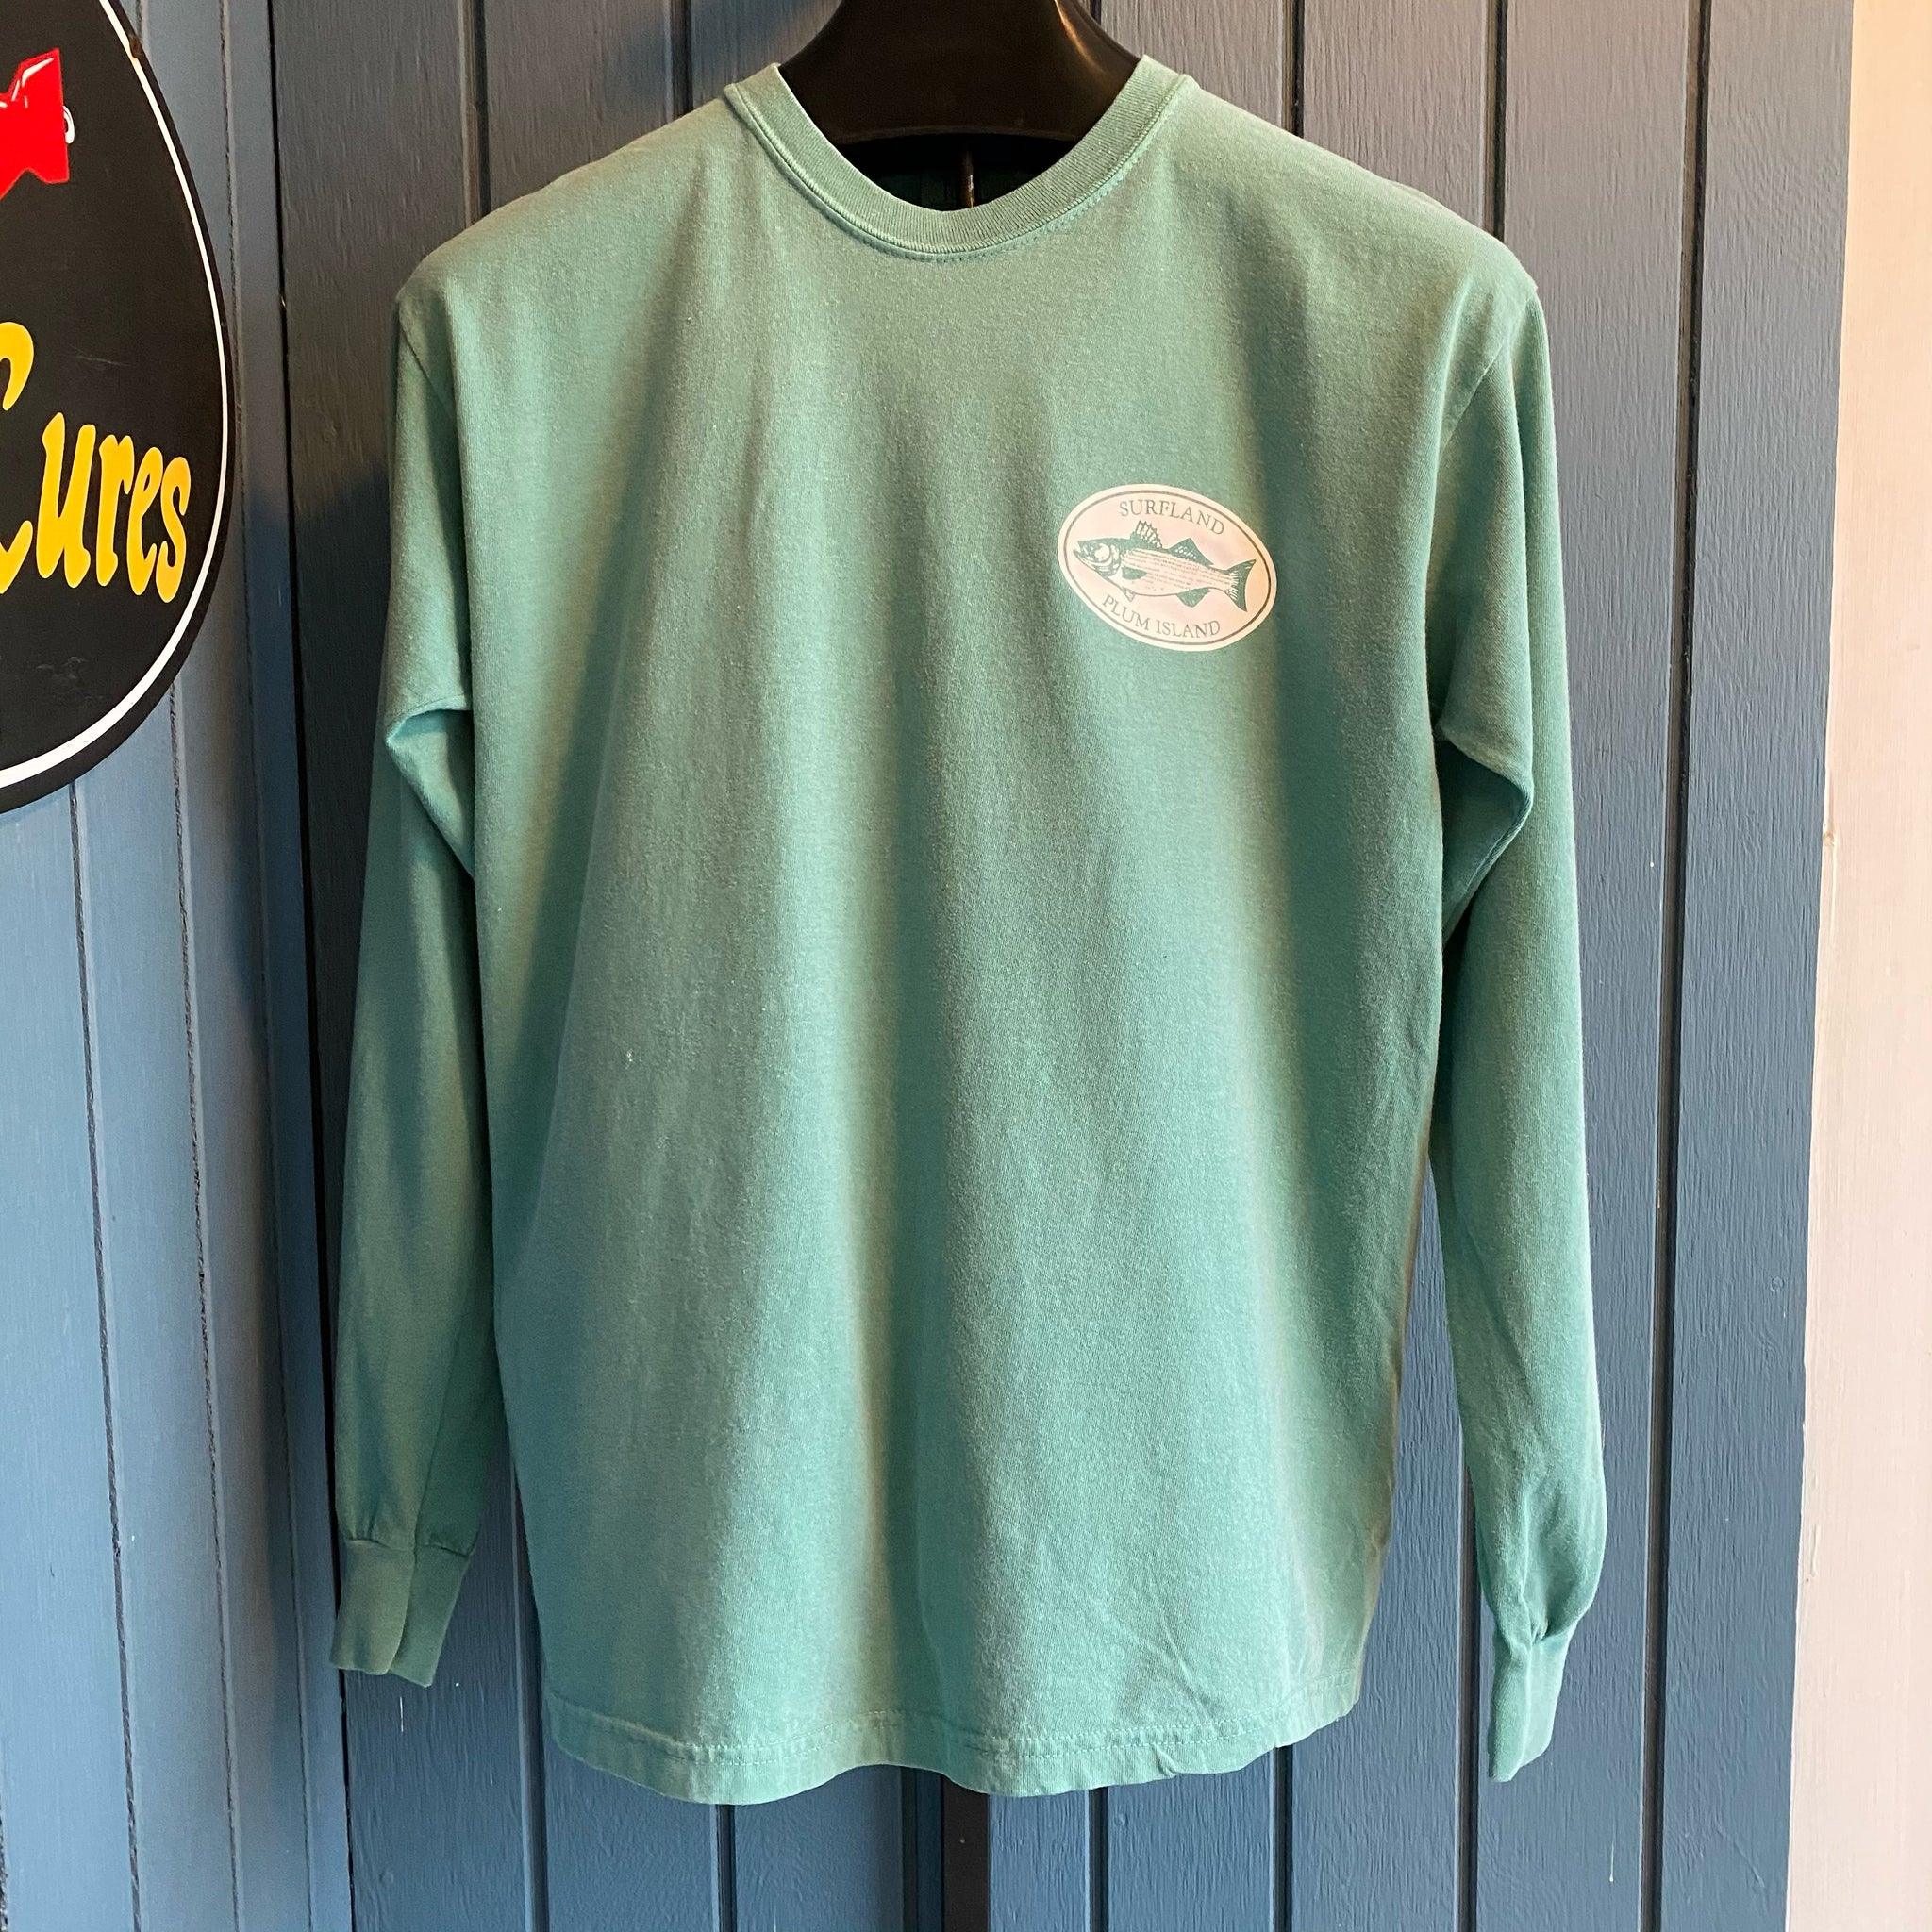 Surfland Gear - Long-sleeve Tee